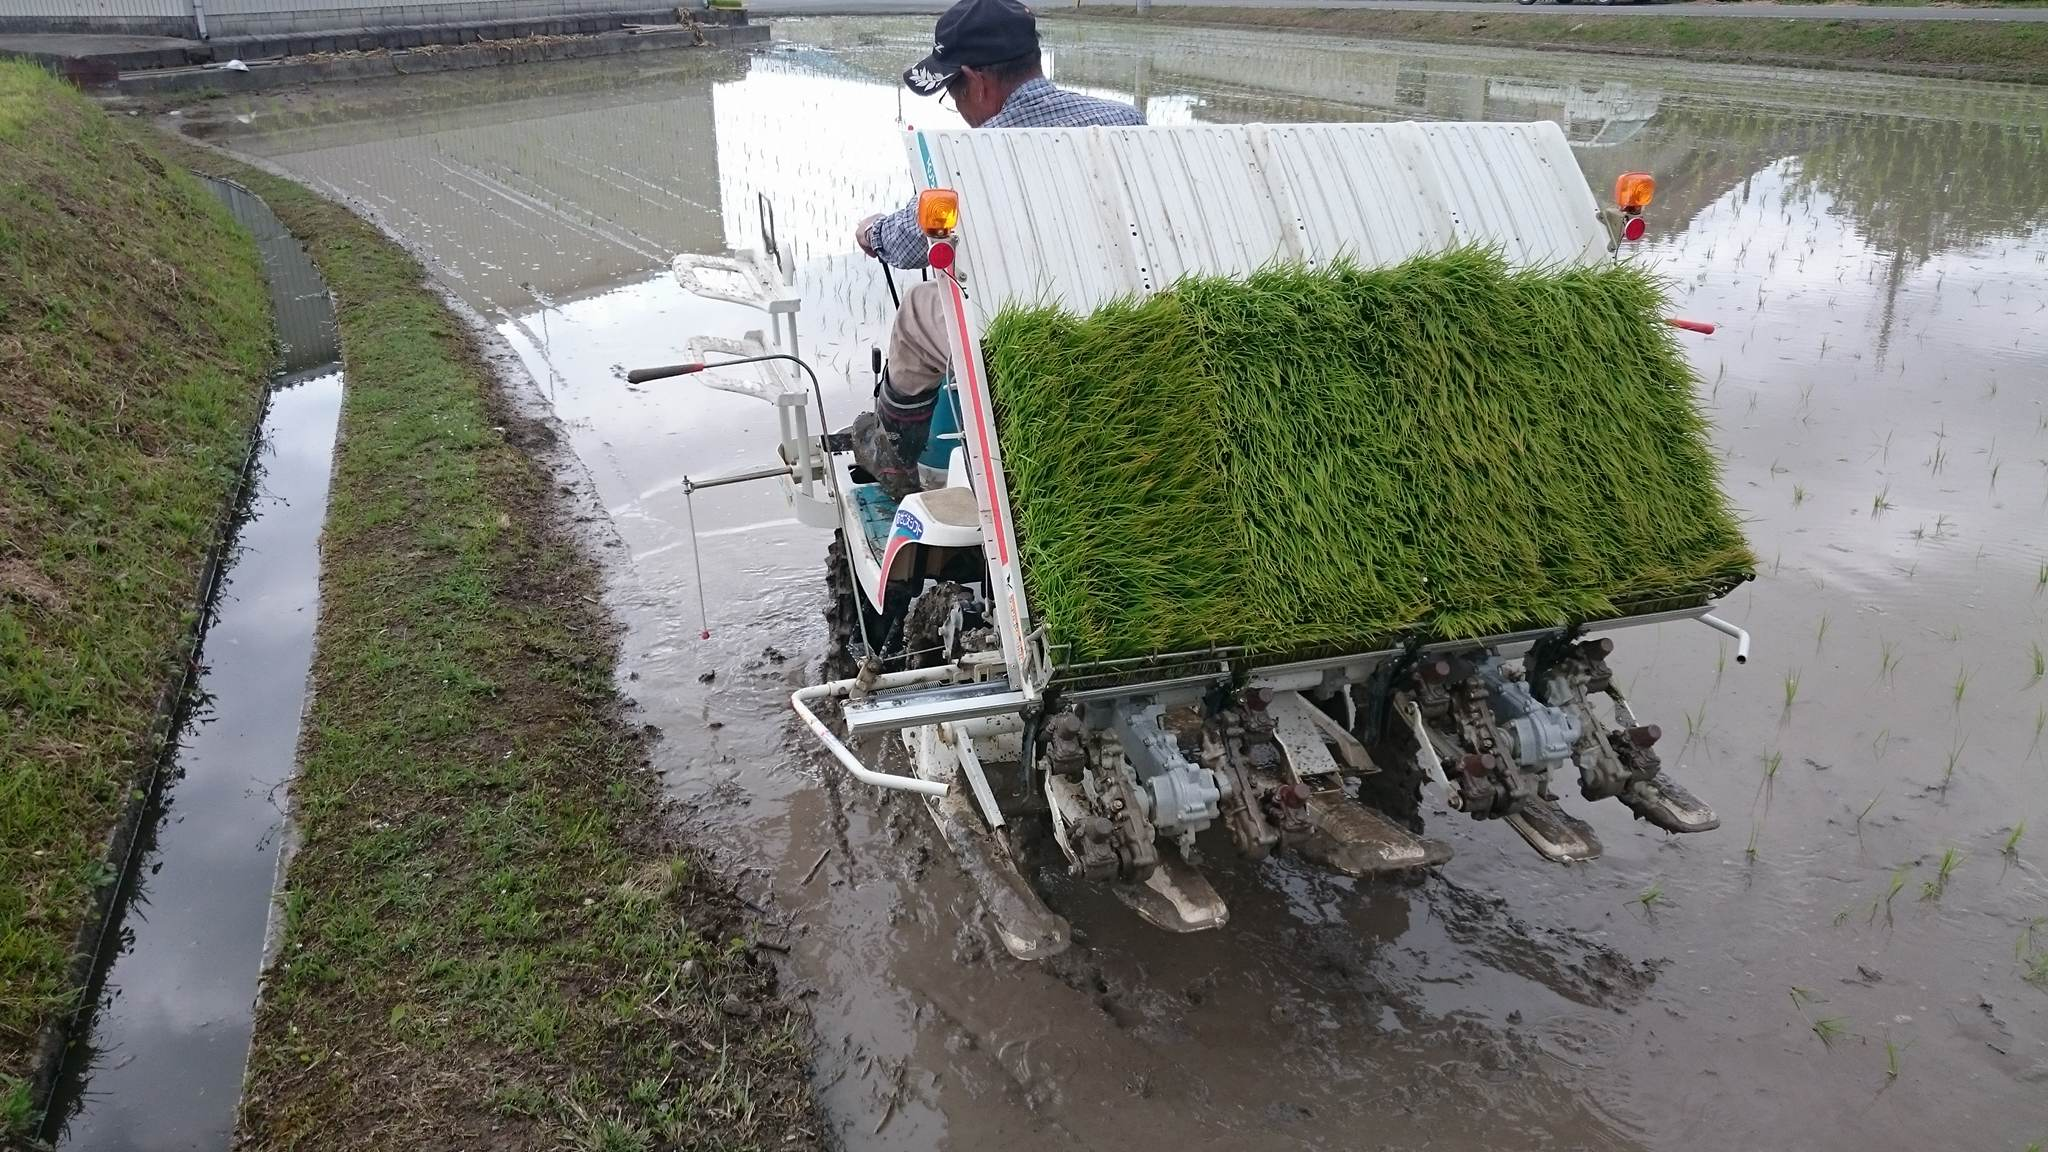 This is the back end of the rice planting mechanism. You load the rice seedlings from the top.